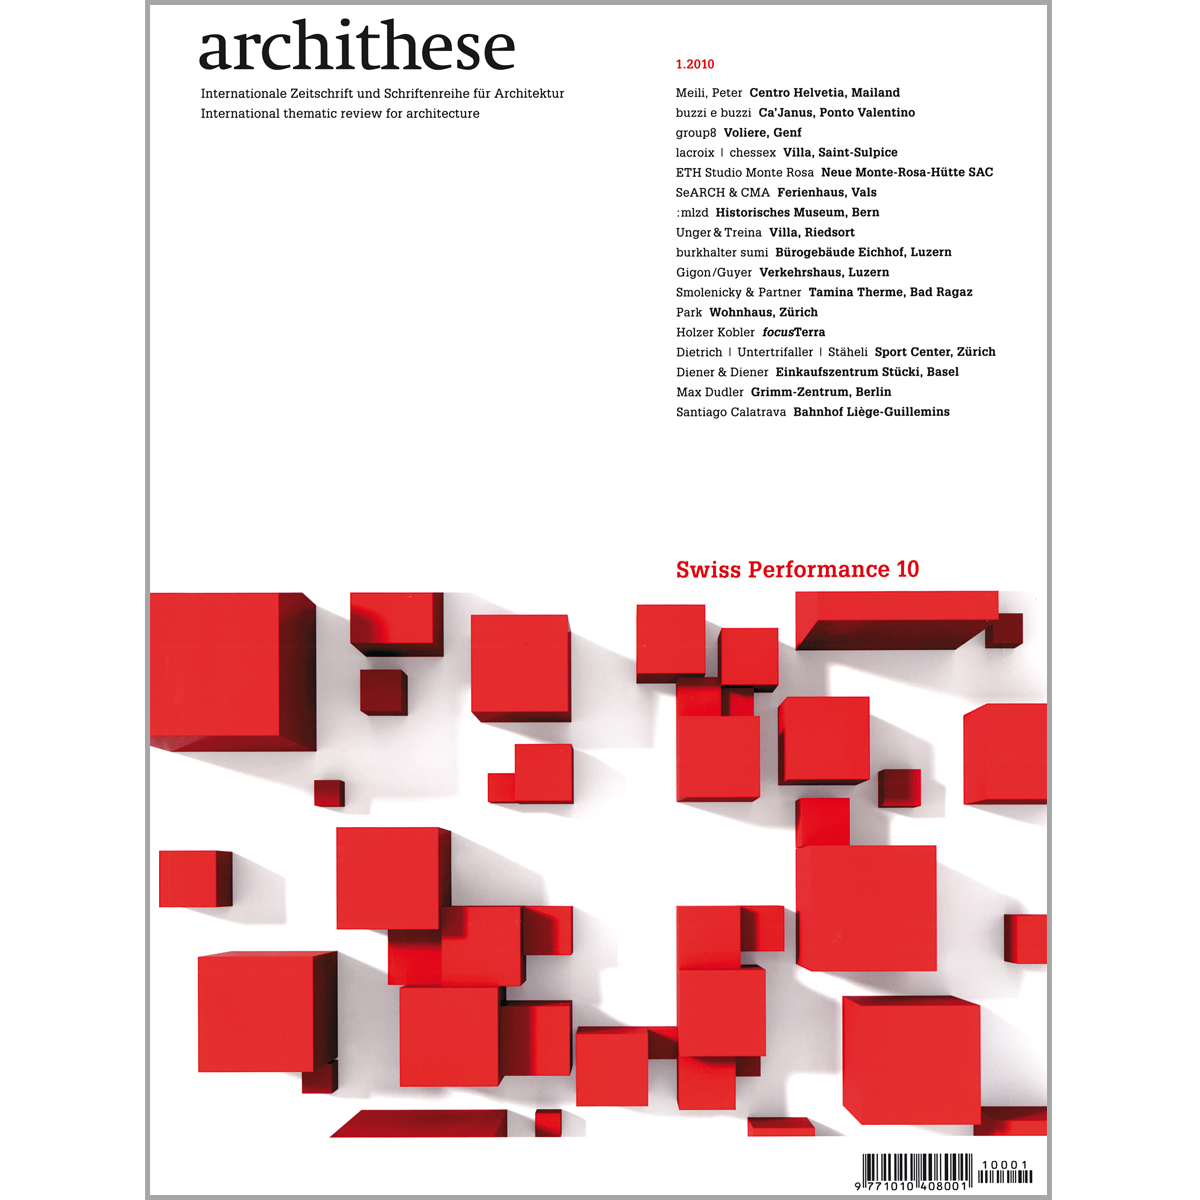 Archithese: Swiss Performance 10